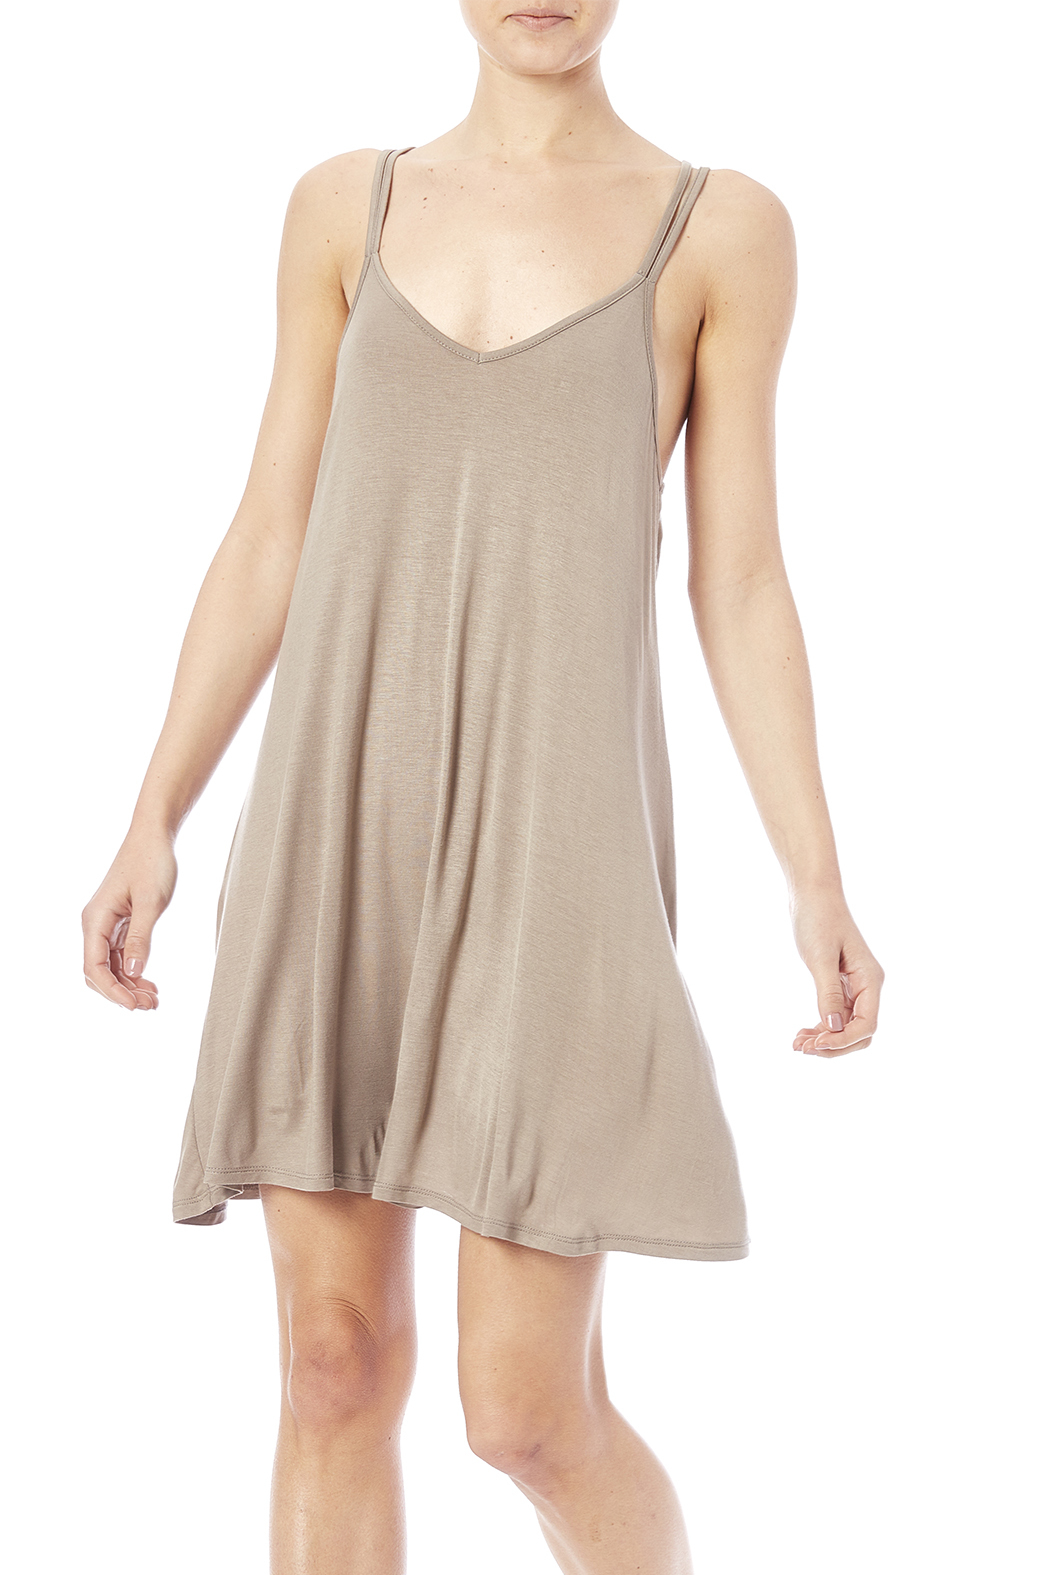 41229f6dc3848 Bear Dance Flowy Taupe Dress from Oregon by My Campus Closet ...